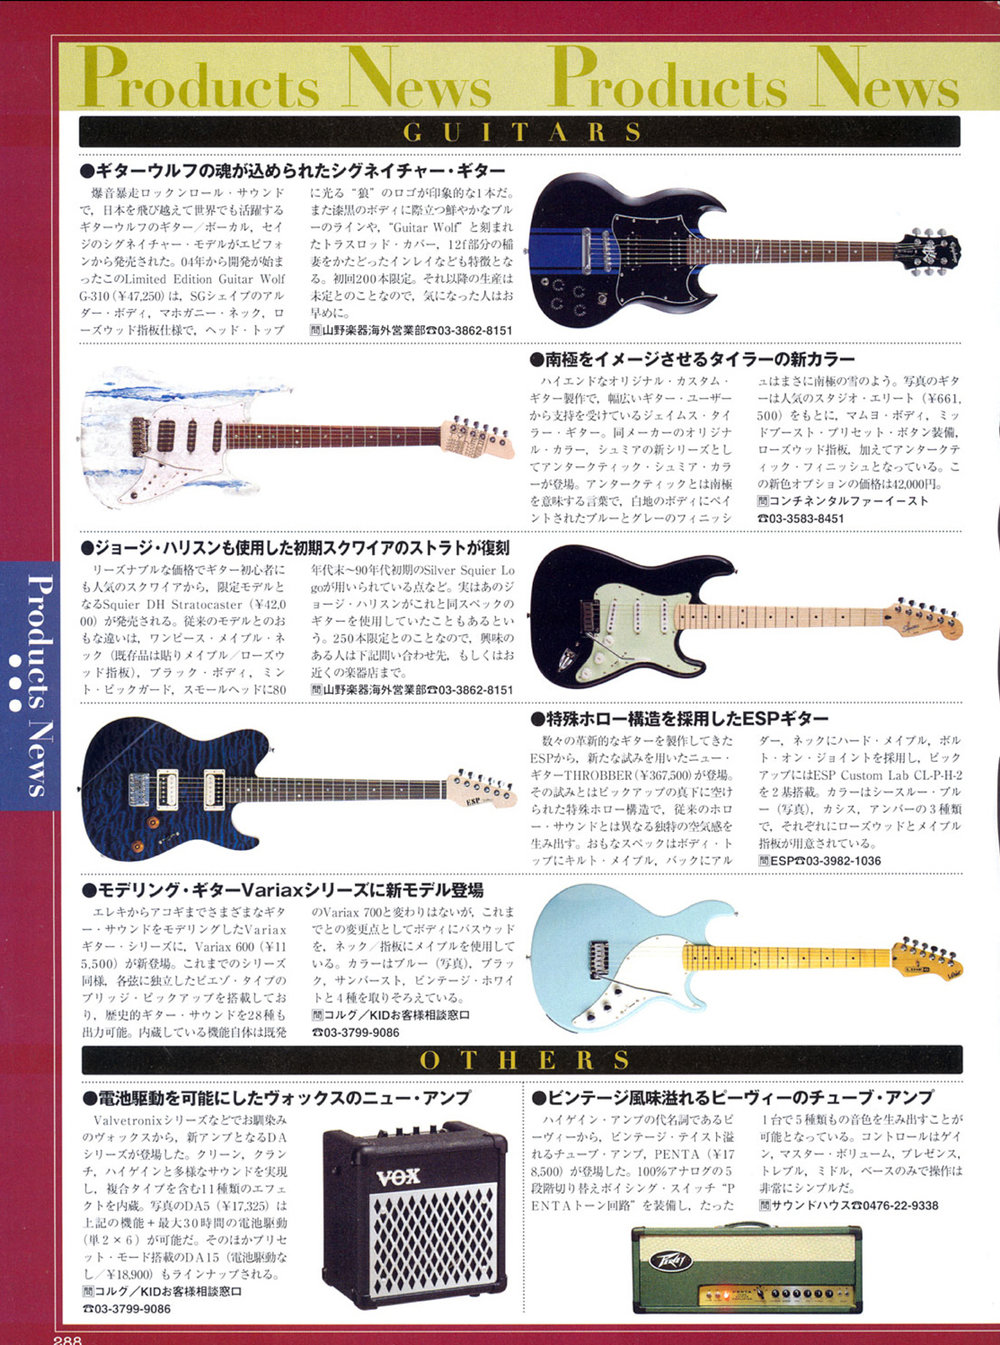 Copy of 2006 Guitar Magazine - Jan.